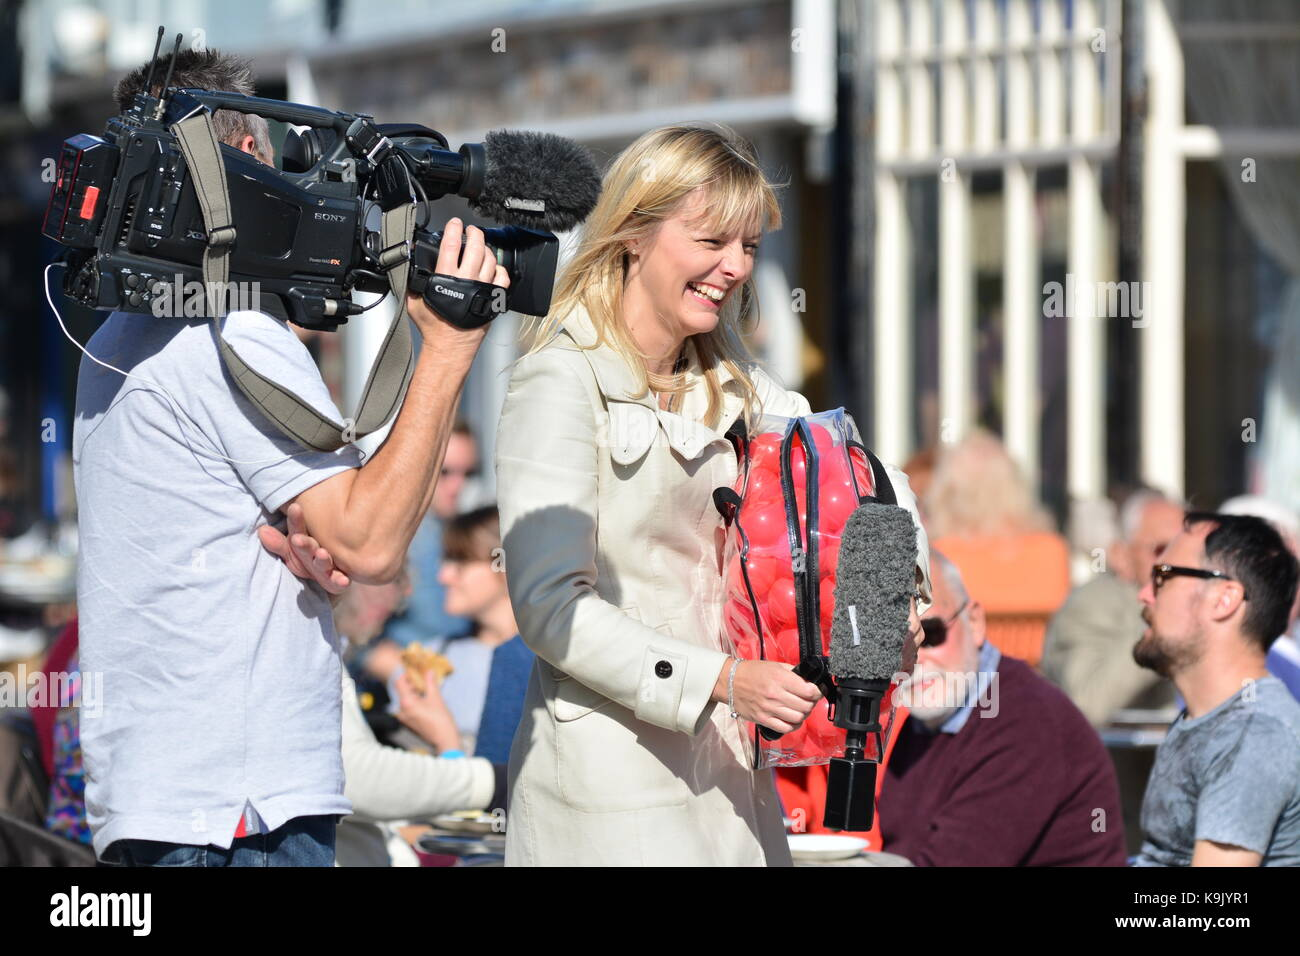 Outside broadcast on a hot day showing a pretty female reporter laughing while conducting an interview, being filmed - Stock Image